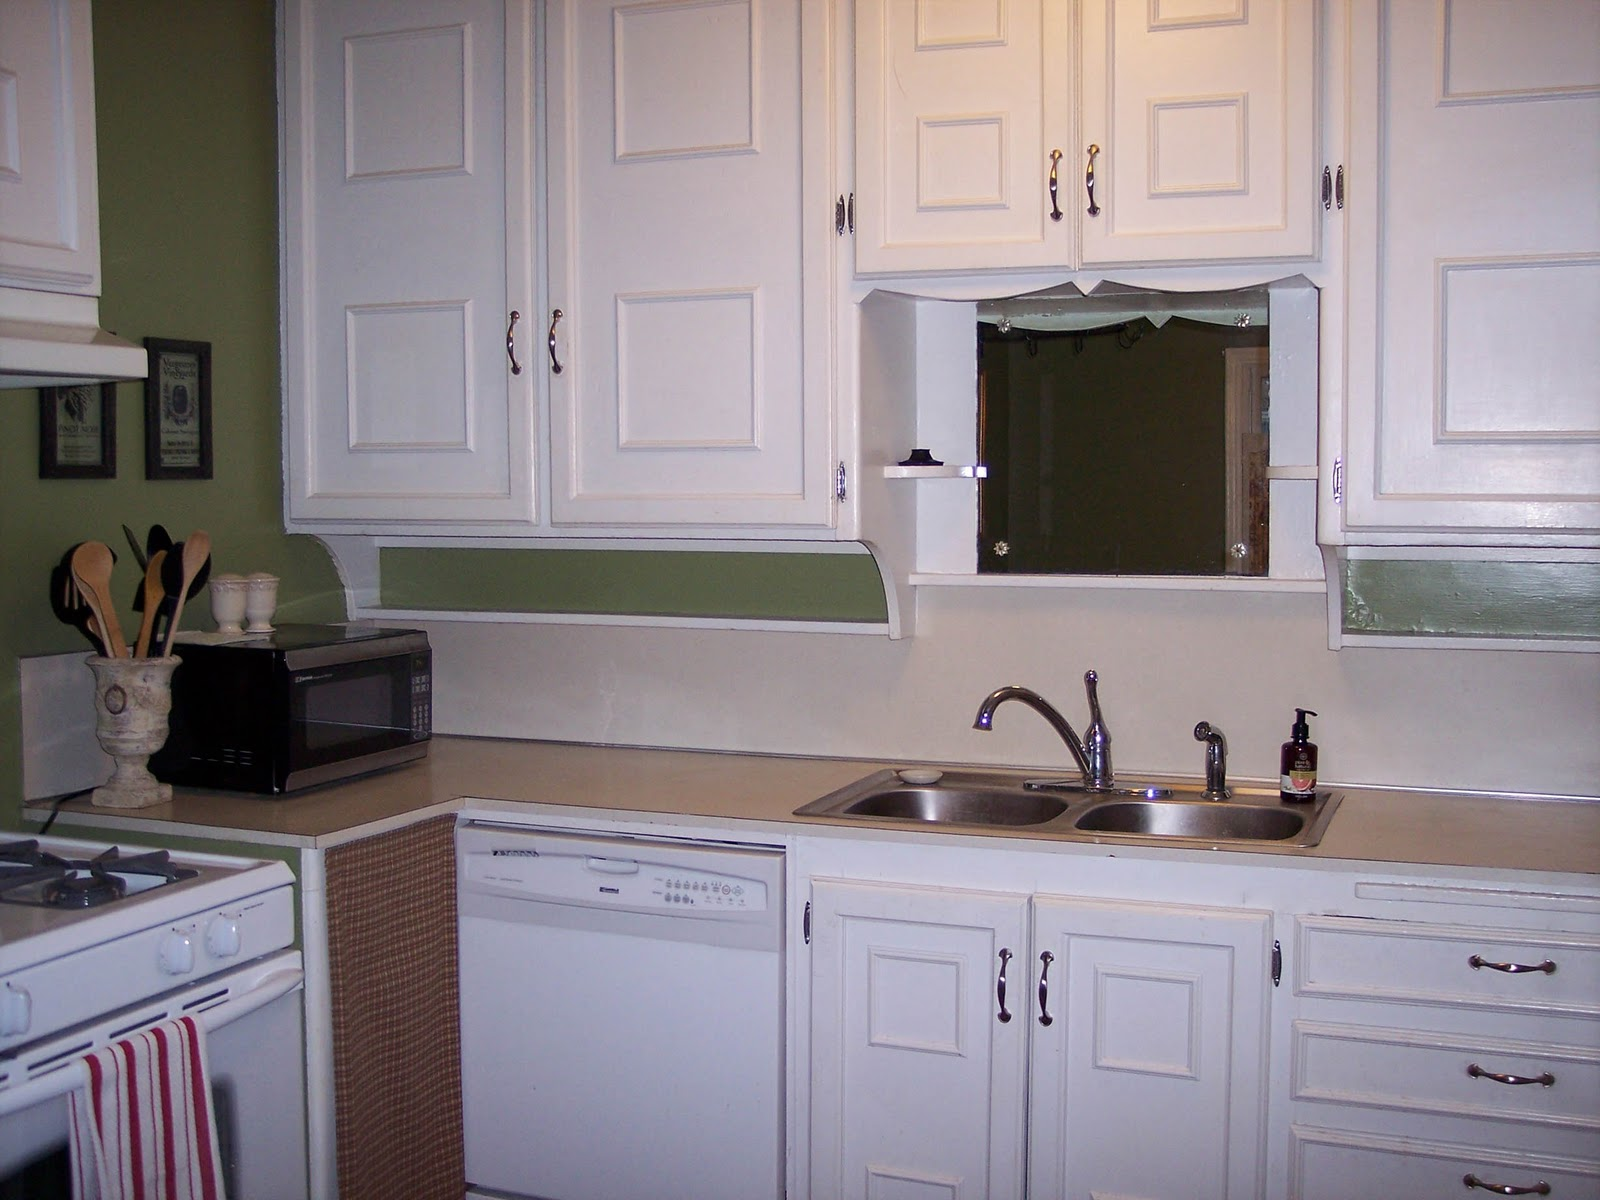 Adding Moulding To Flat Kitchen Cabinets